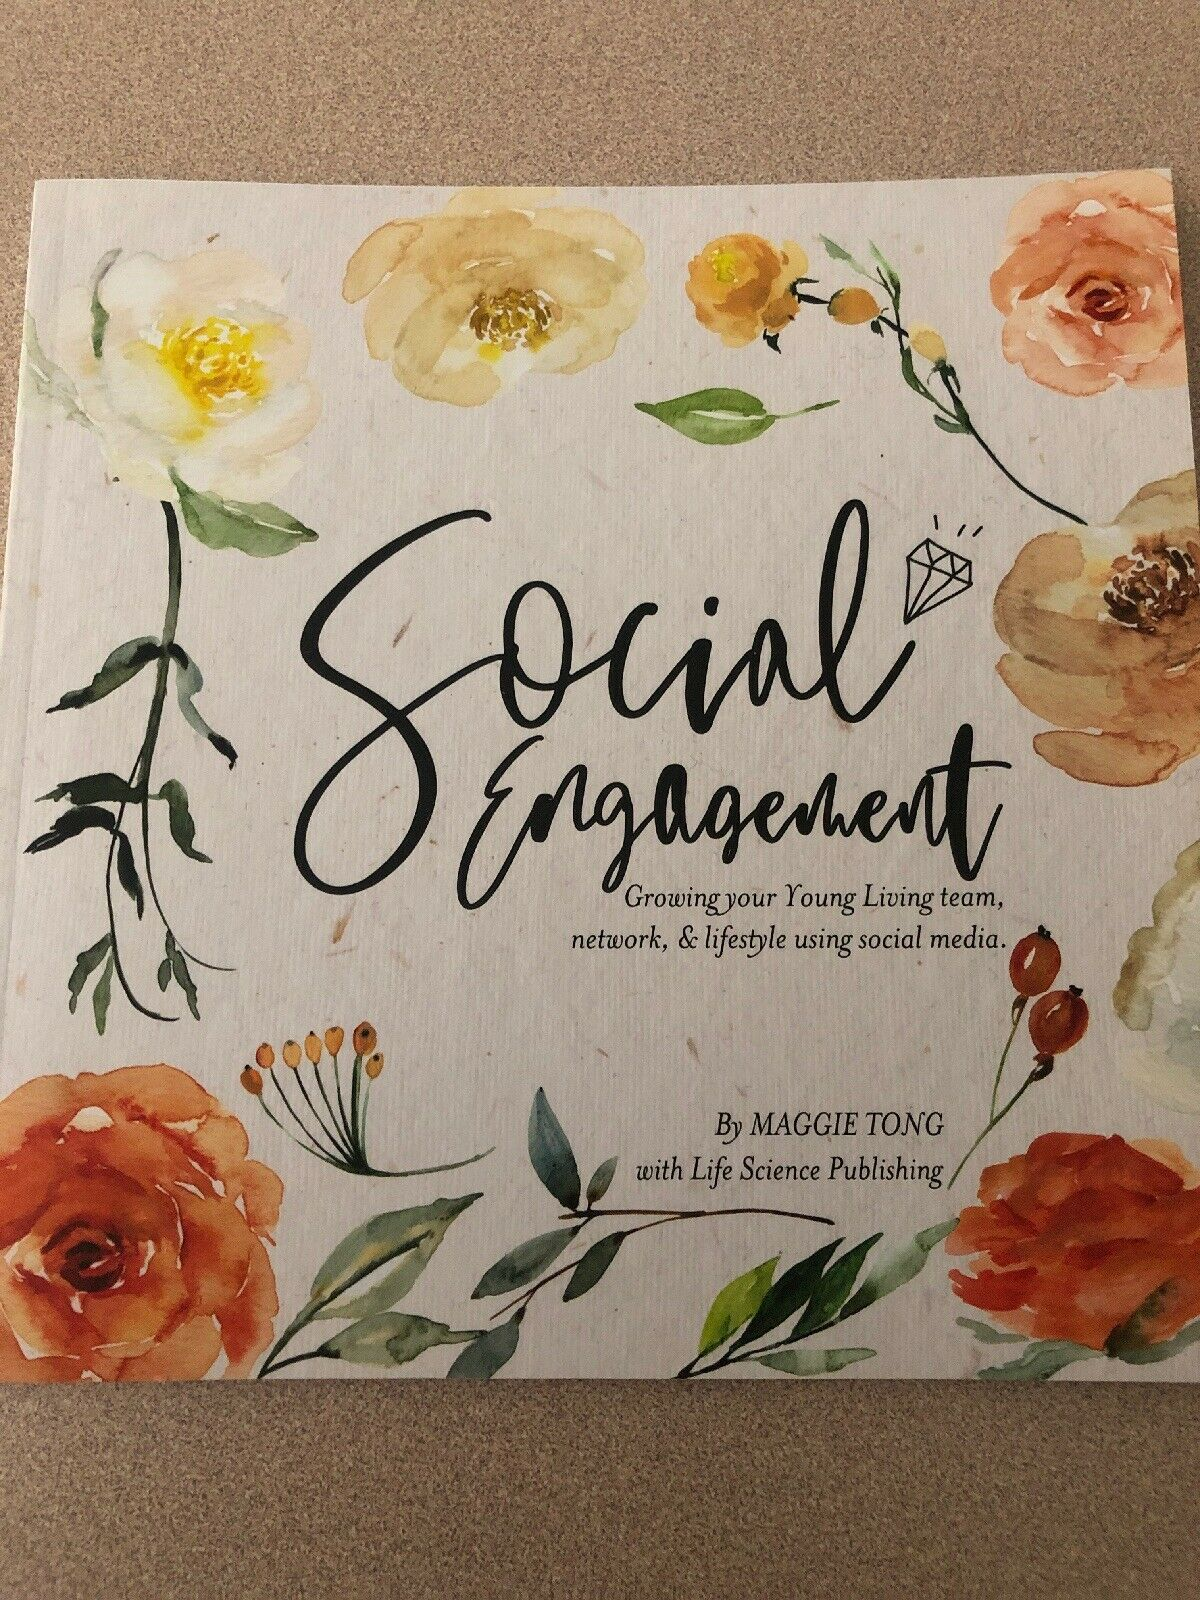 Primary image for Social Engagment Growing your Young Living Team Network On Social Media